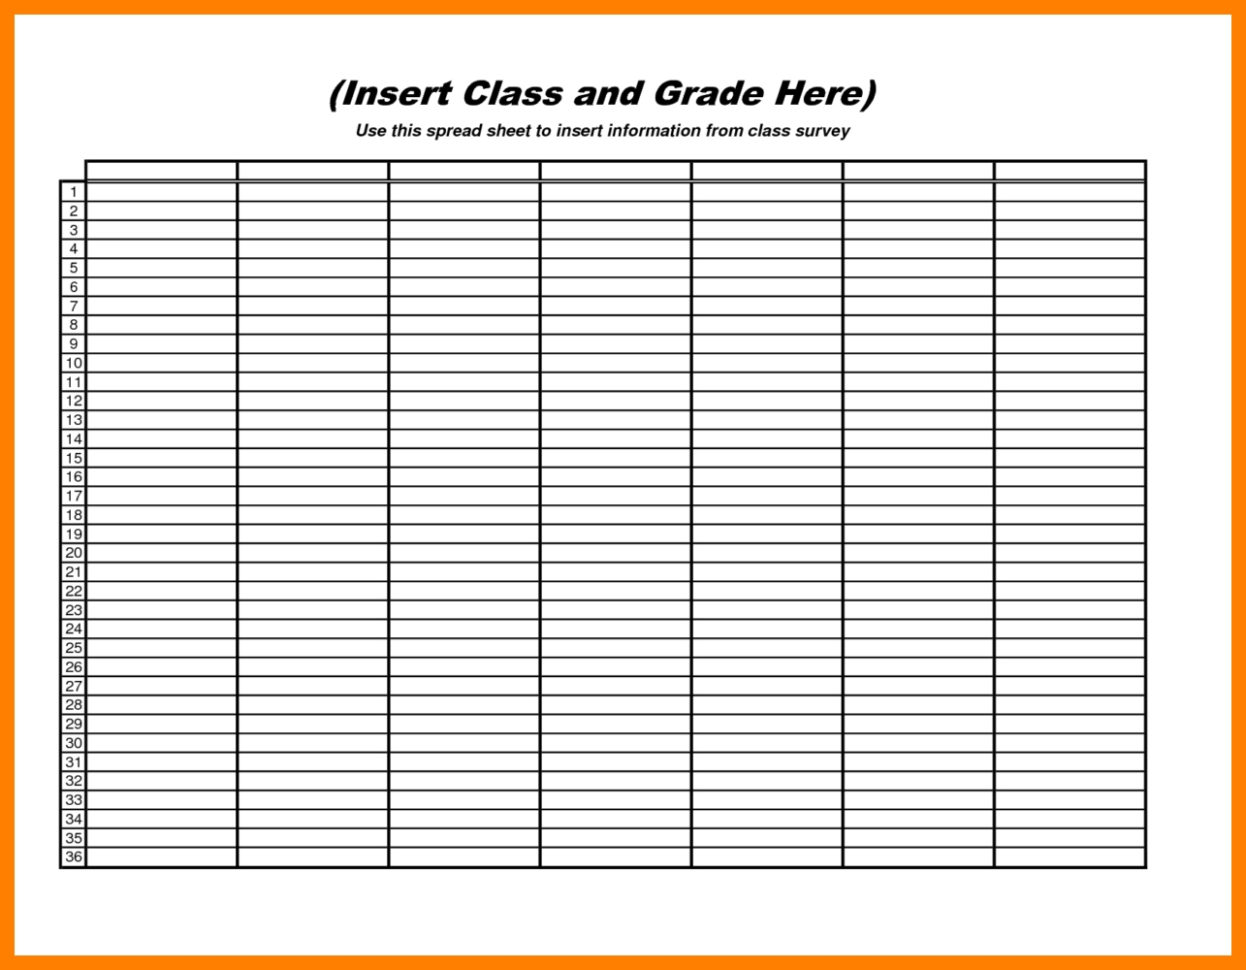 Blank Spreadsheet Printable Bunch Ideas For Templates Of Sheets To Blank Spreadsheets